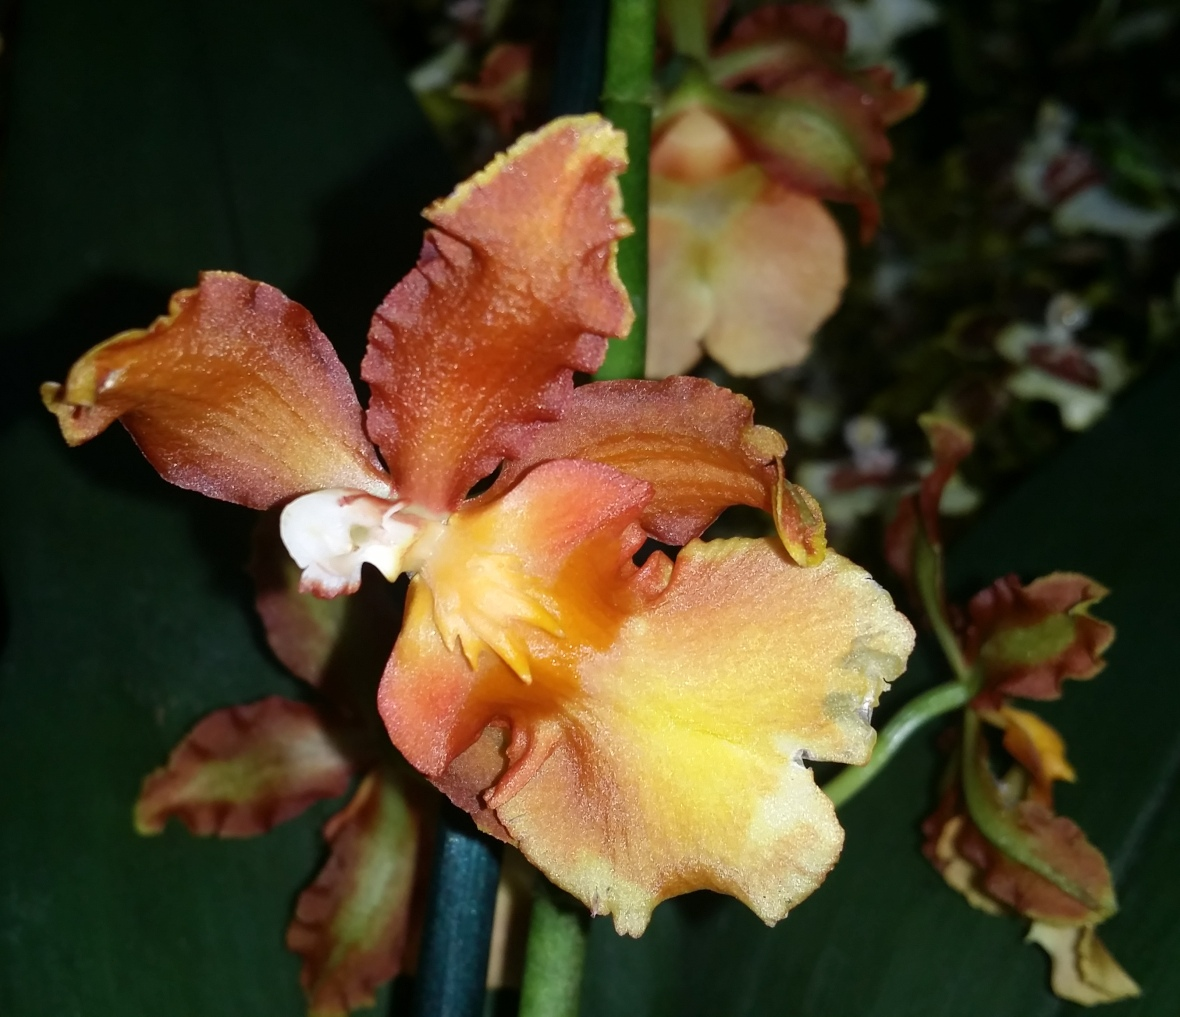 Golden Brown & Yellow Oncidium Orchid